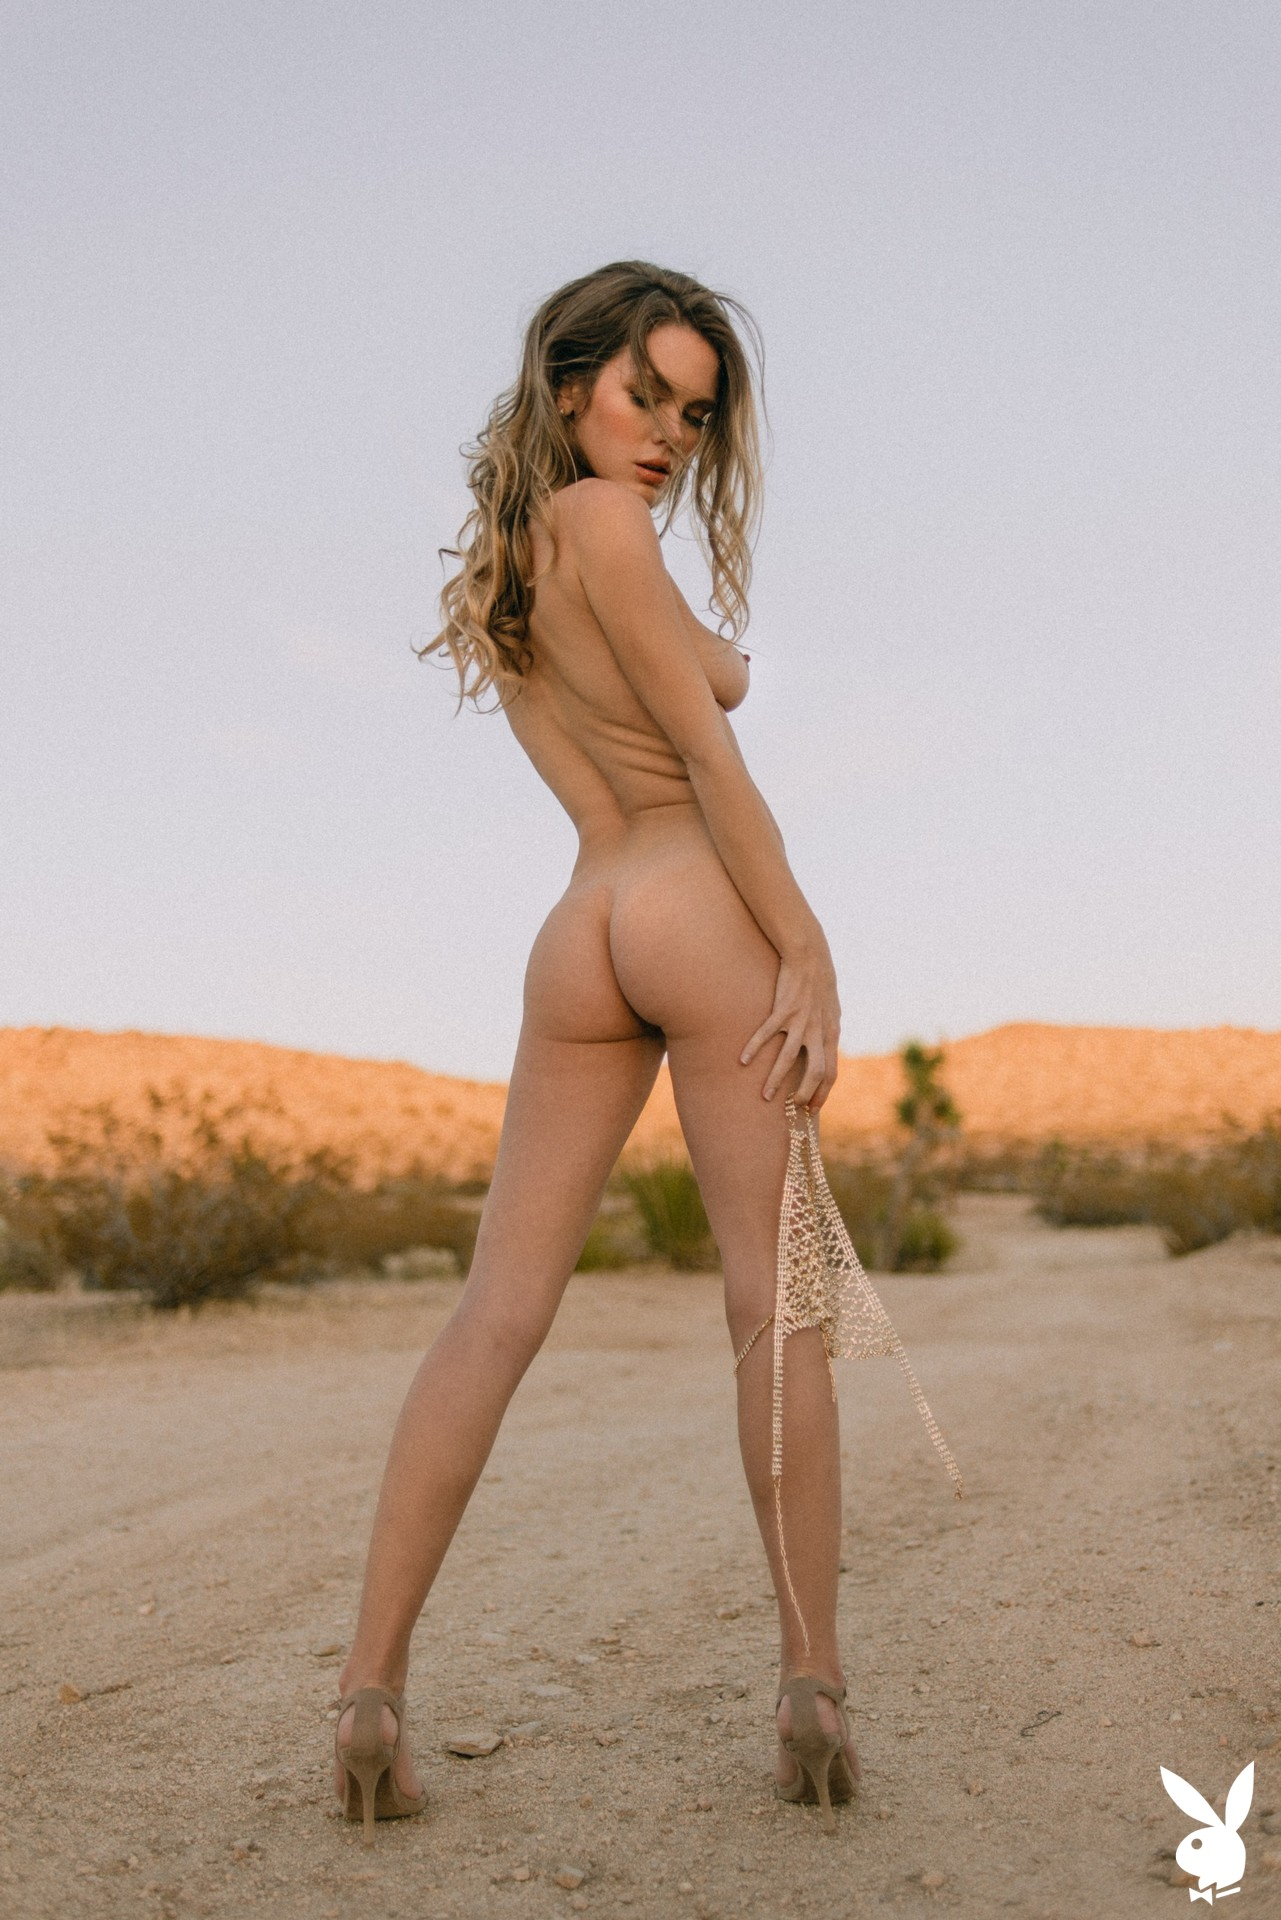 Ora Young In Dessert Shimmer Playboy Plus (17)